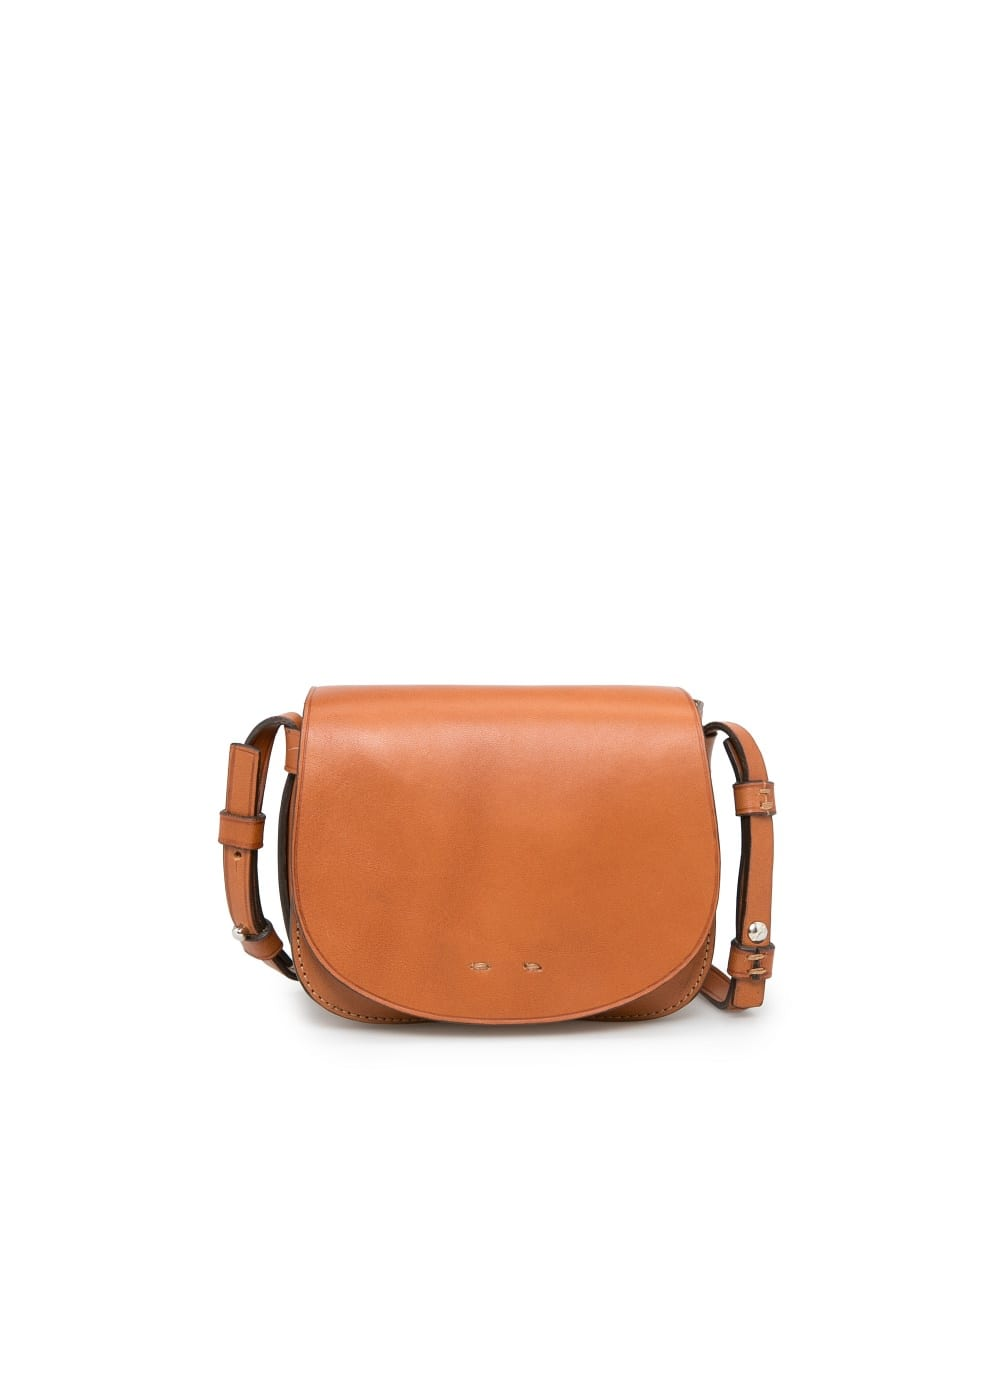 PREMIUM - Leather cross body bag